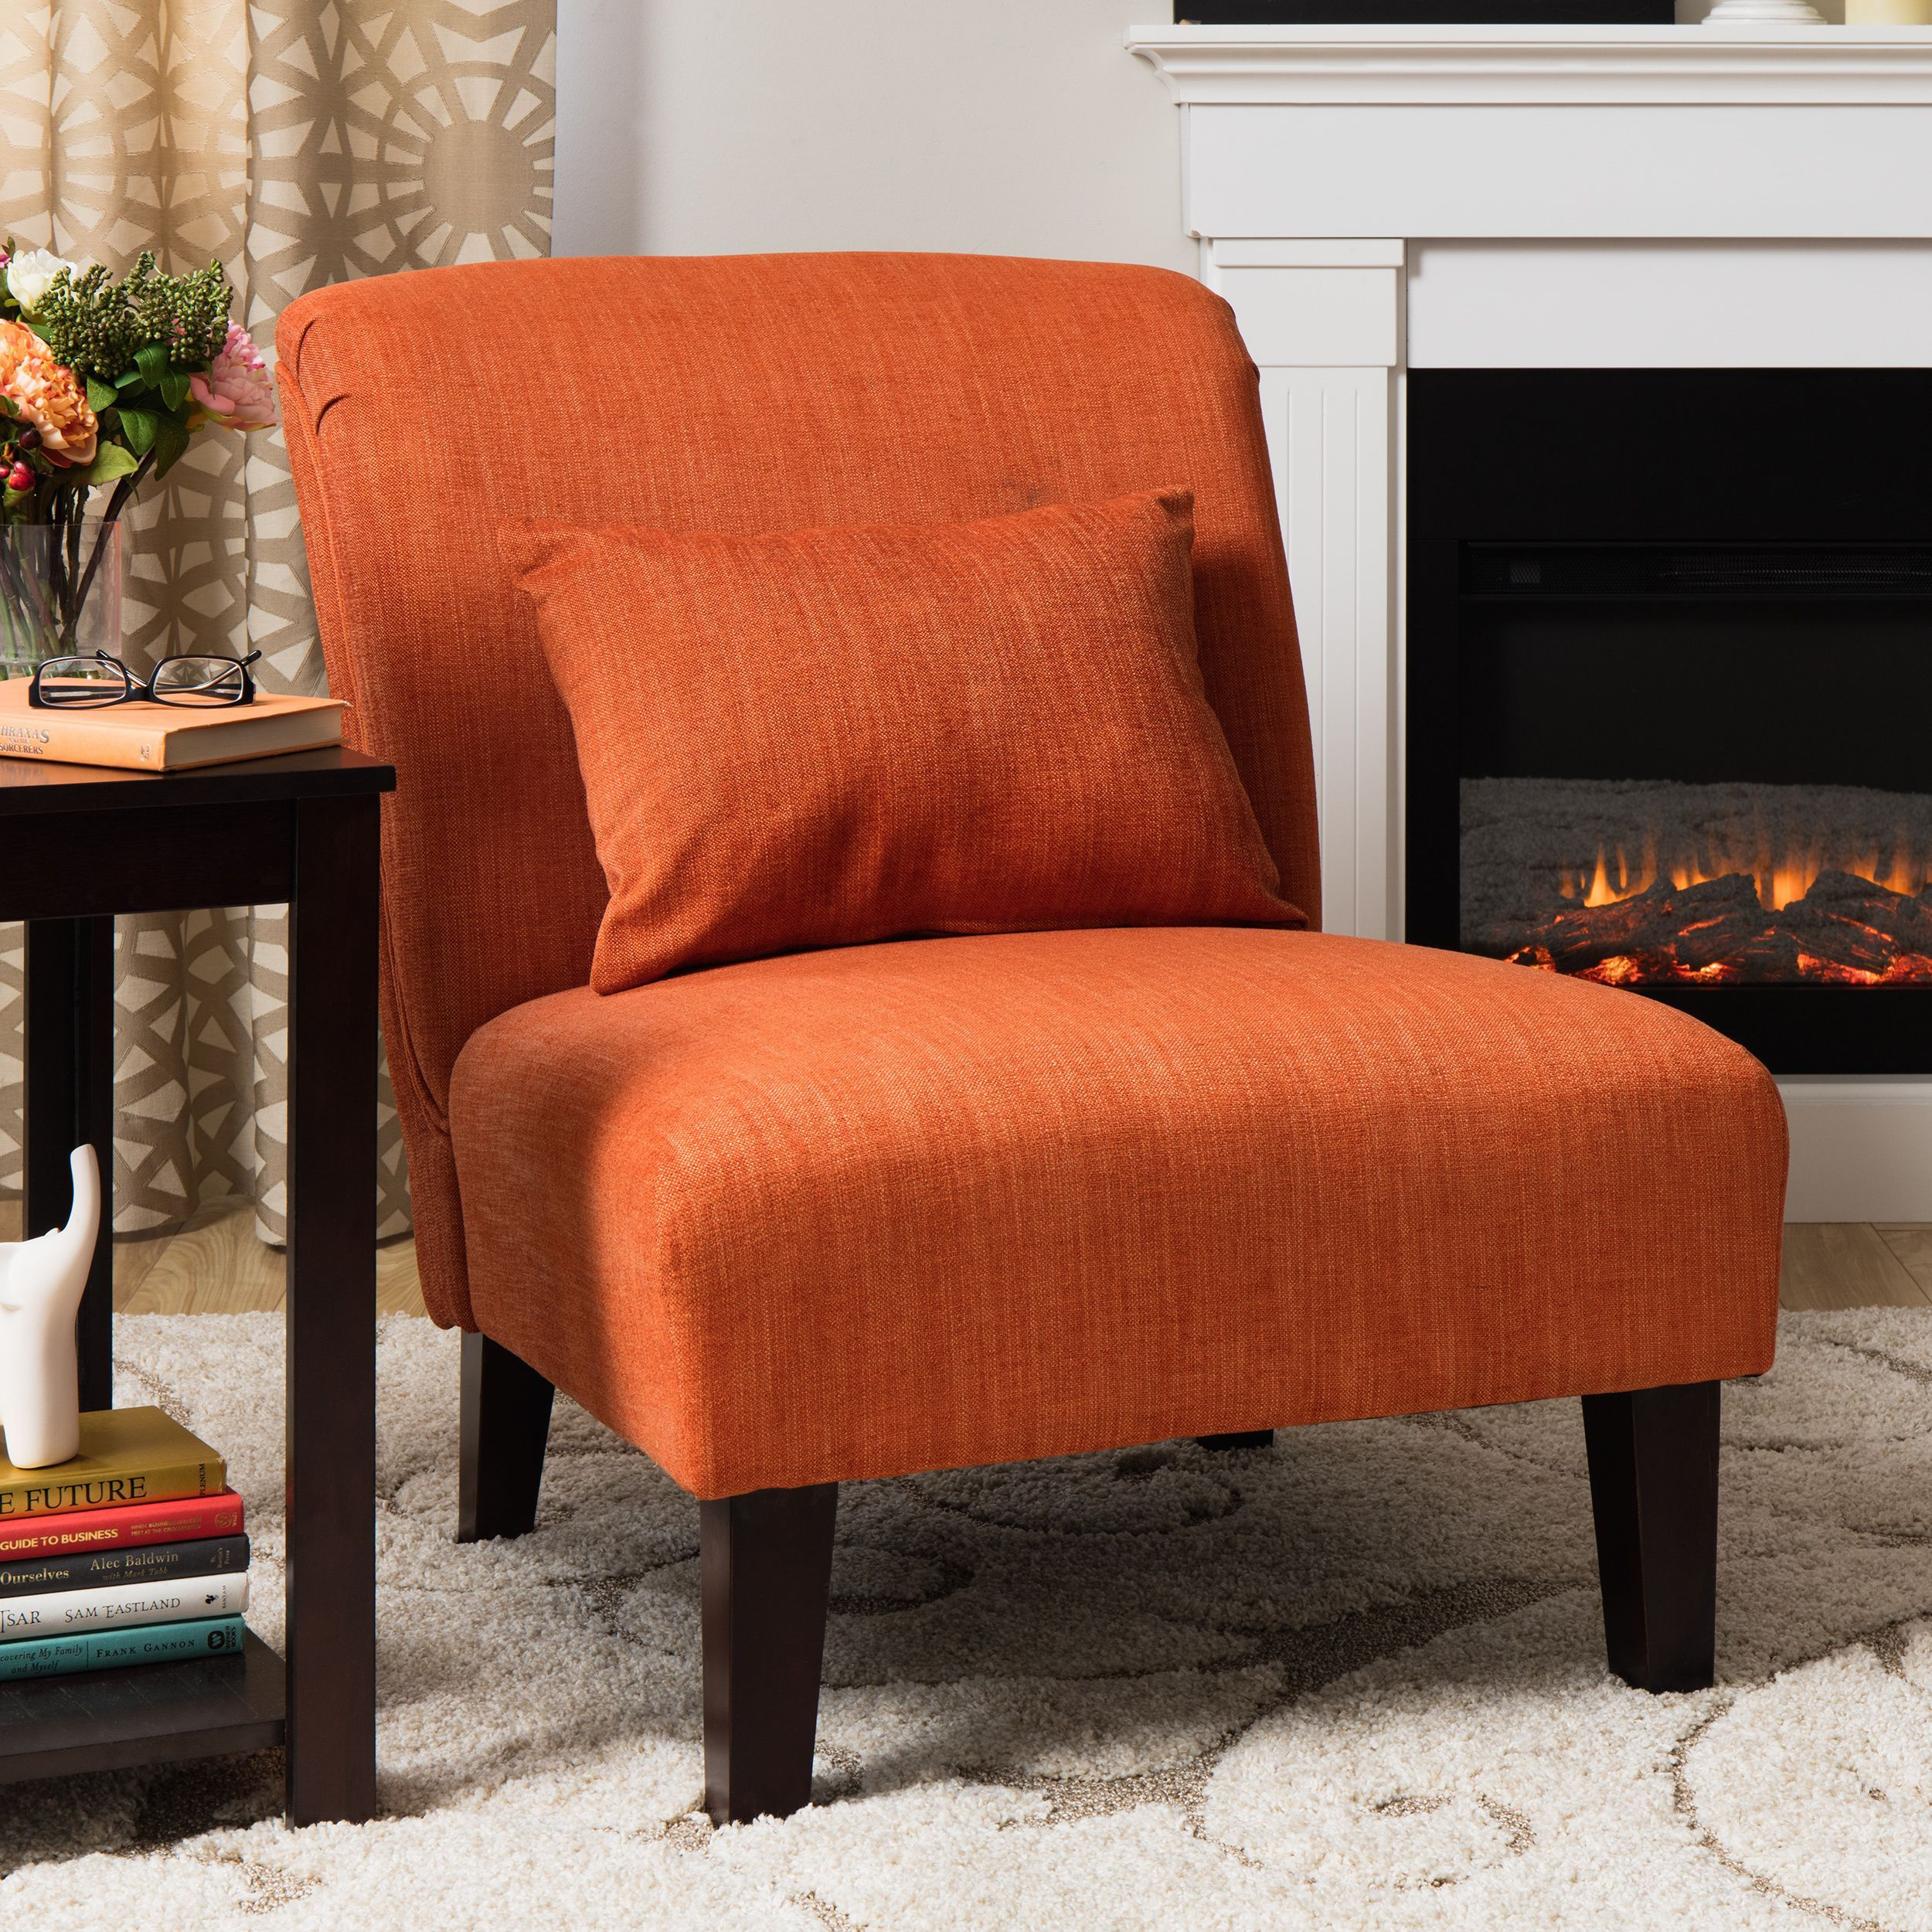 Burnt Orange Accent Chair Add A Stylish Touch To Your Home Decor With This Orange